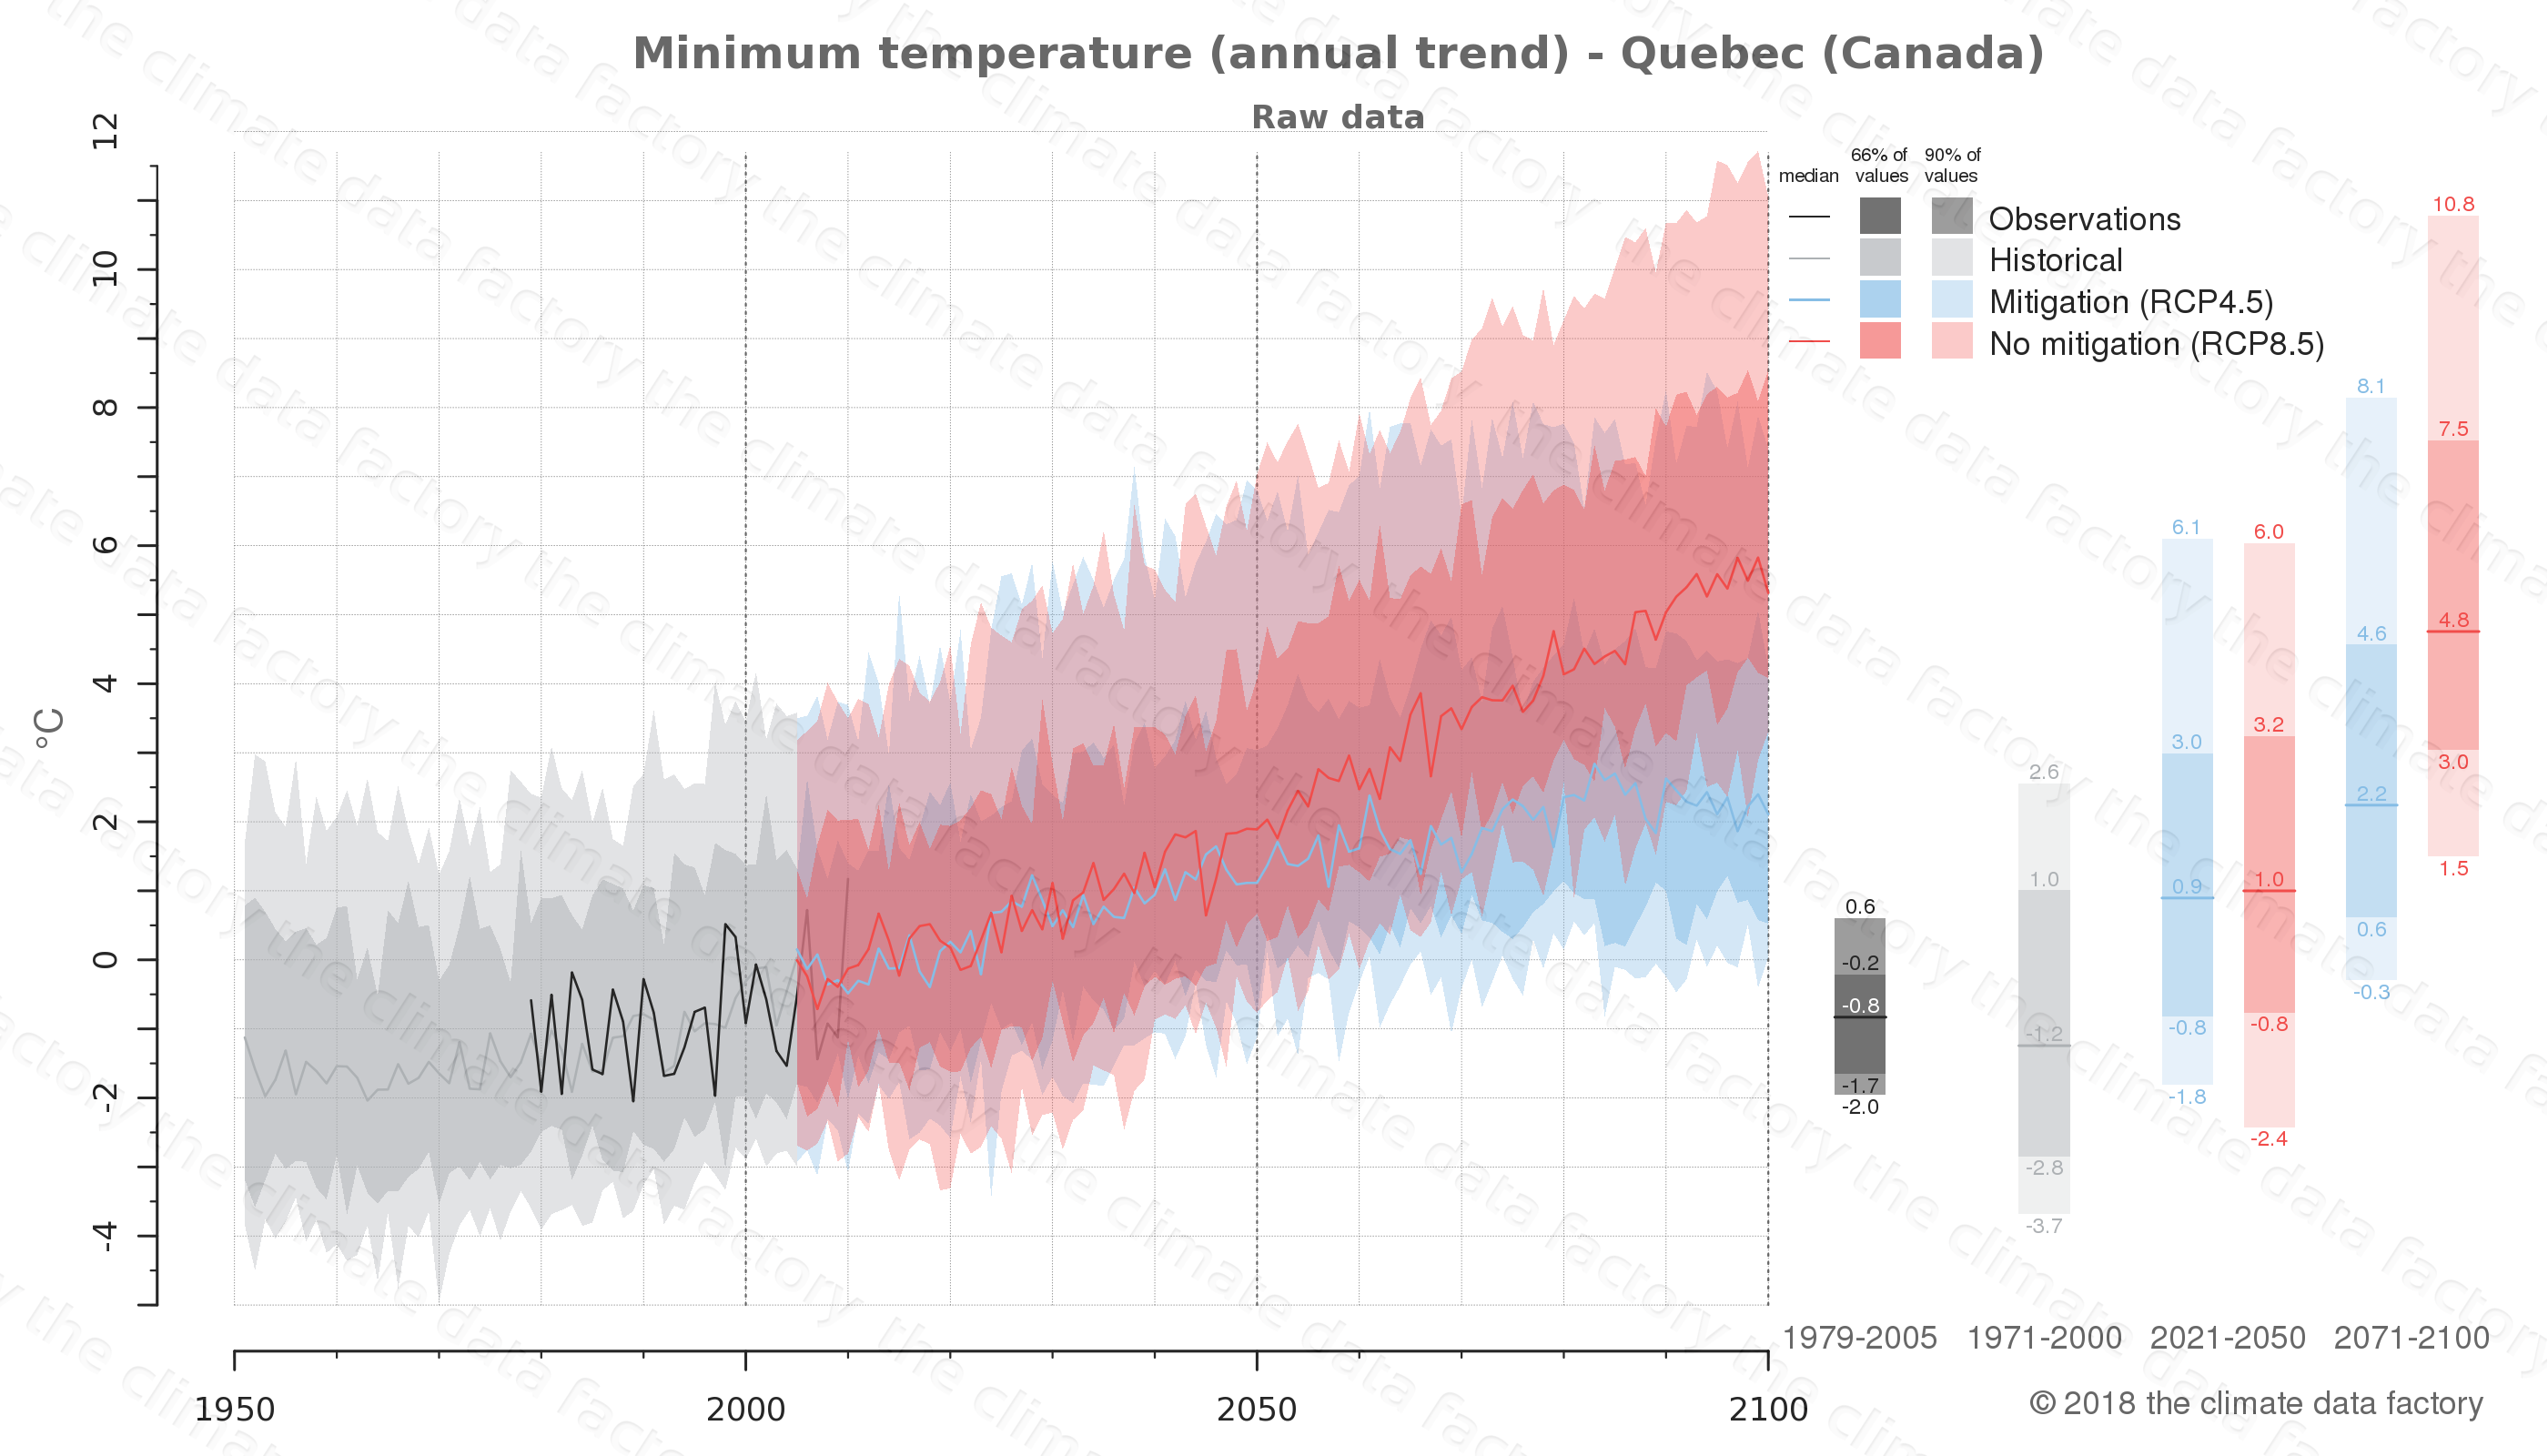 climate change data policy adaptation climate graph city data minimum-temperature quebec canada